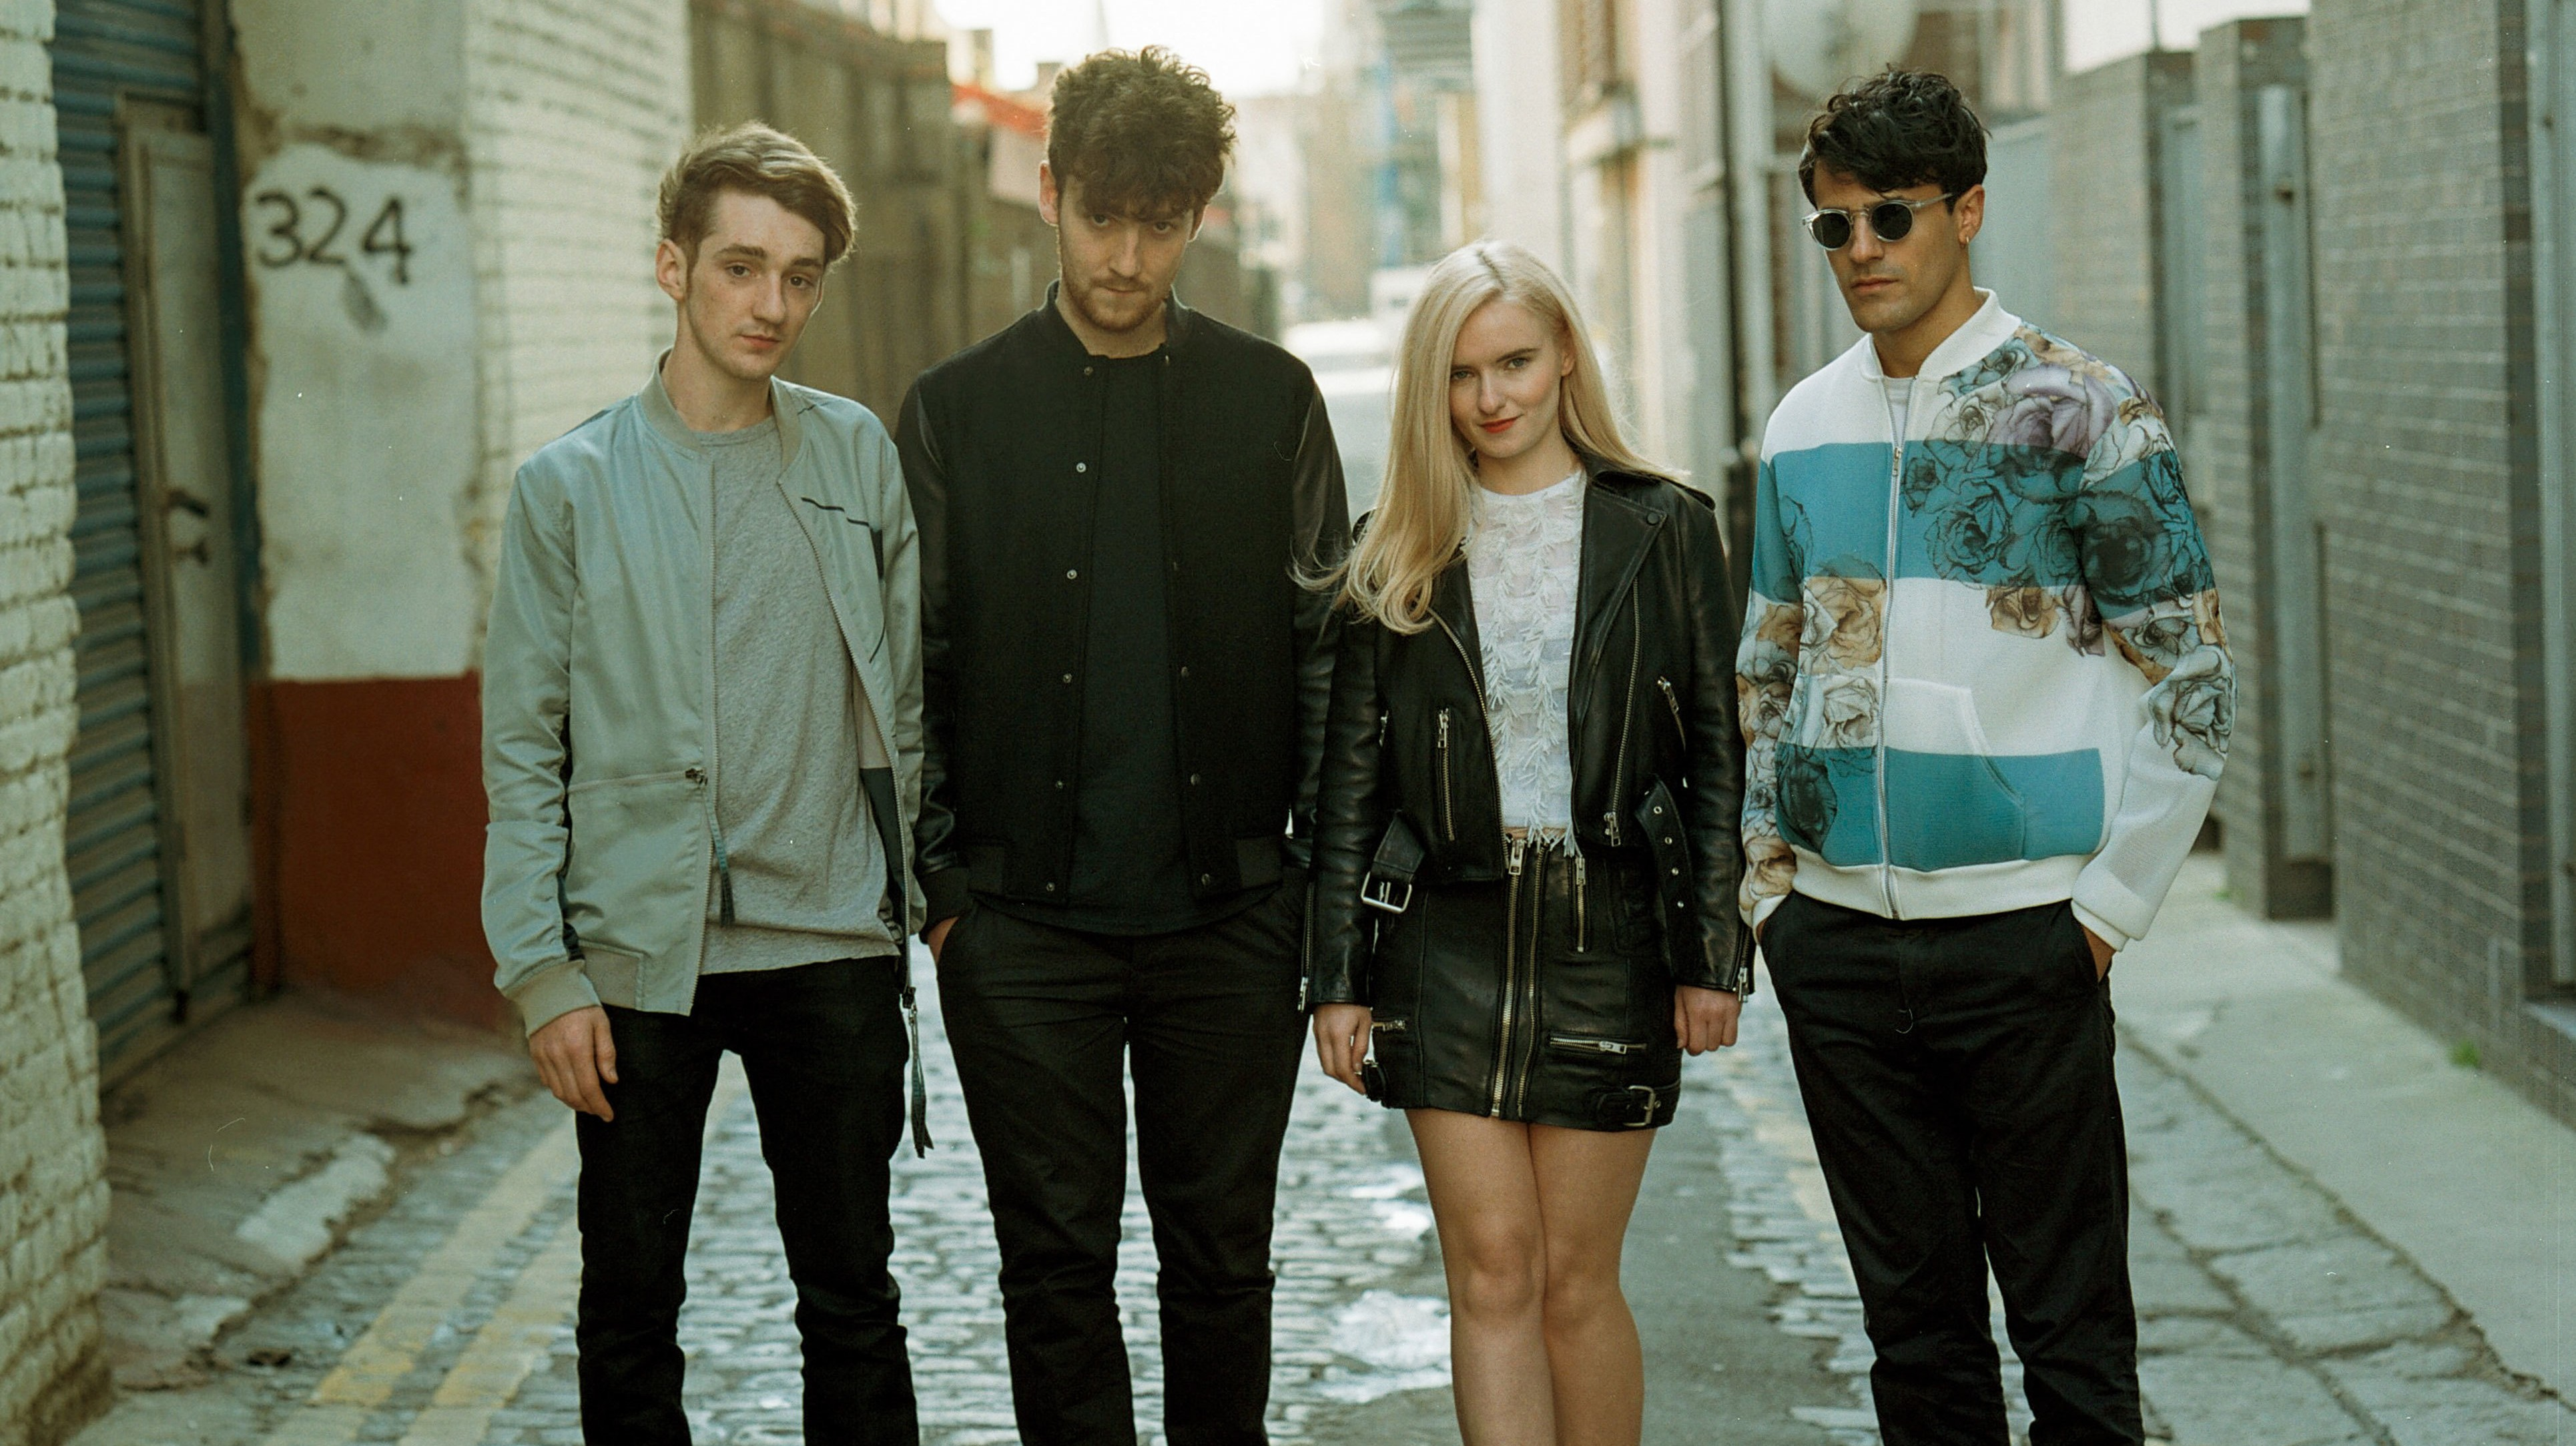 clean bandit, the electro-classic quartet who wrote the world's most shazamed song